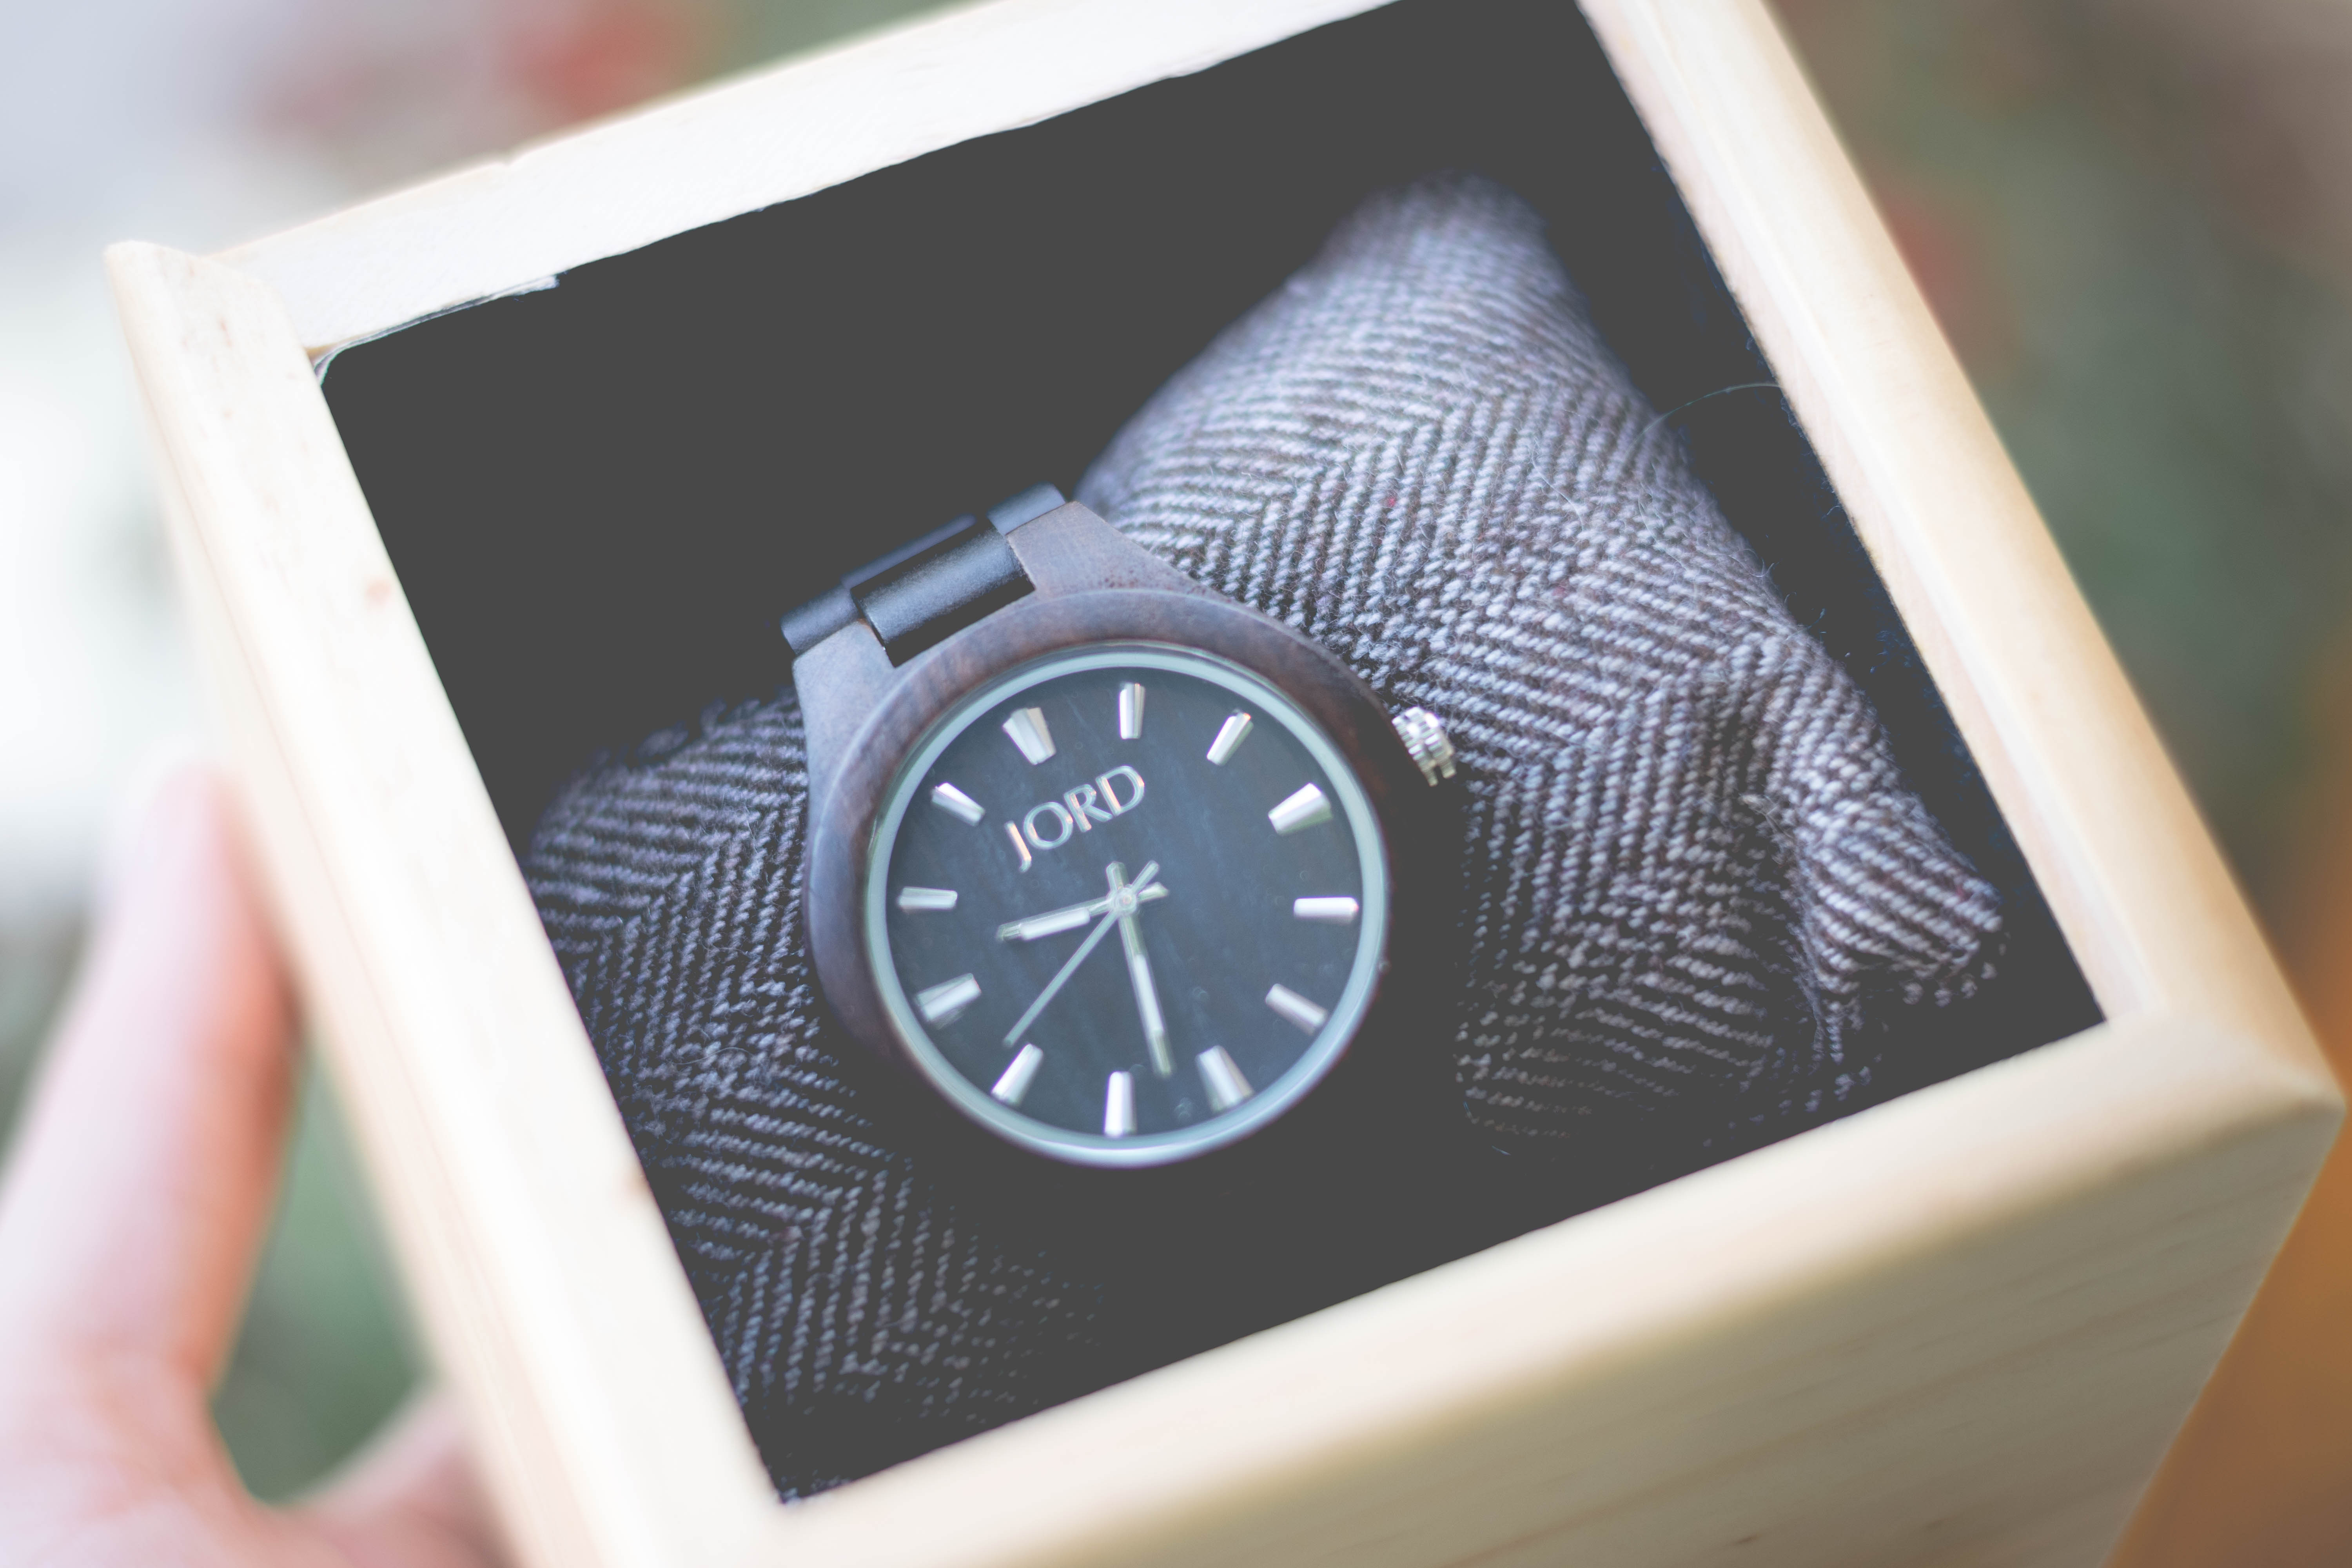 @alixepractice's cover photo for 'Jord Watches- Wood Watches for Holiday Gifting'